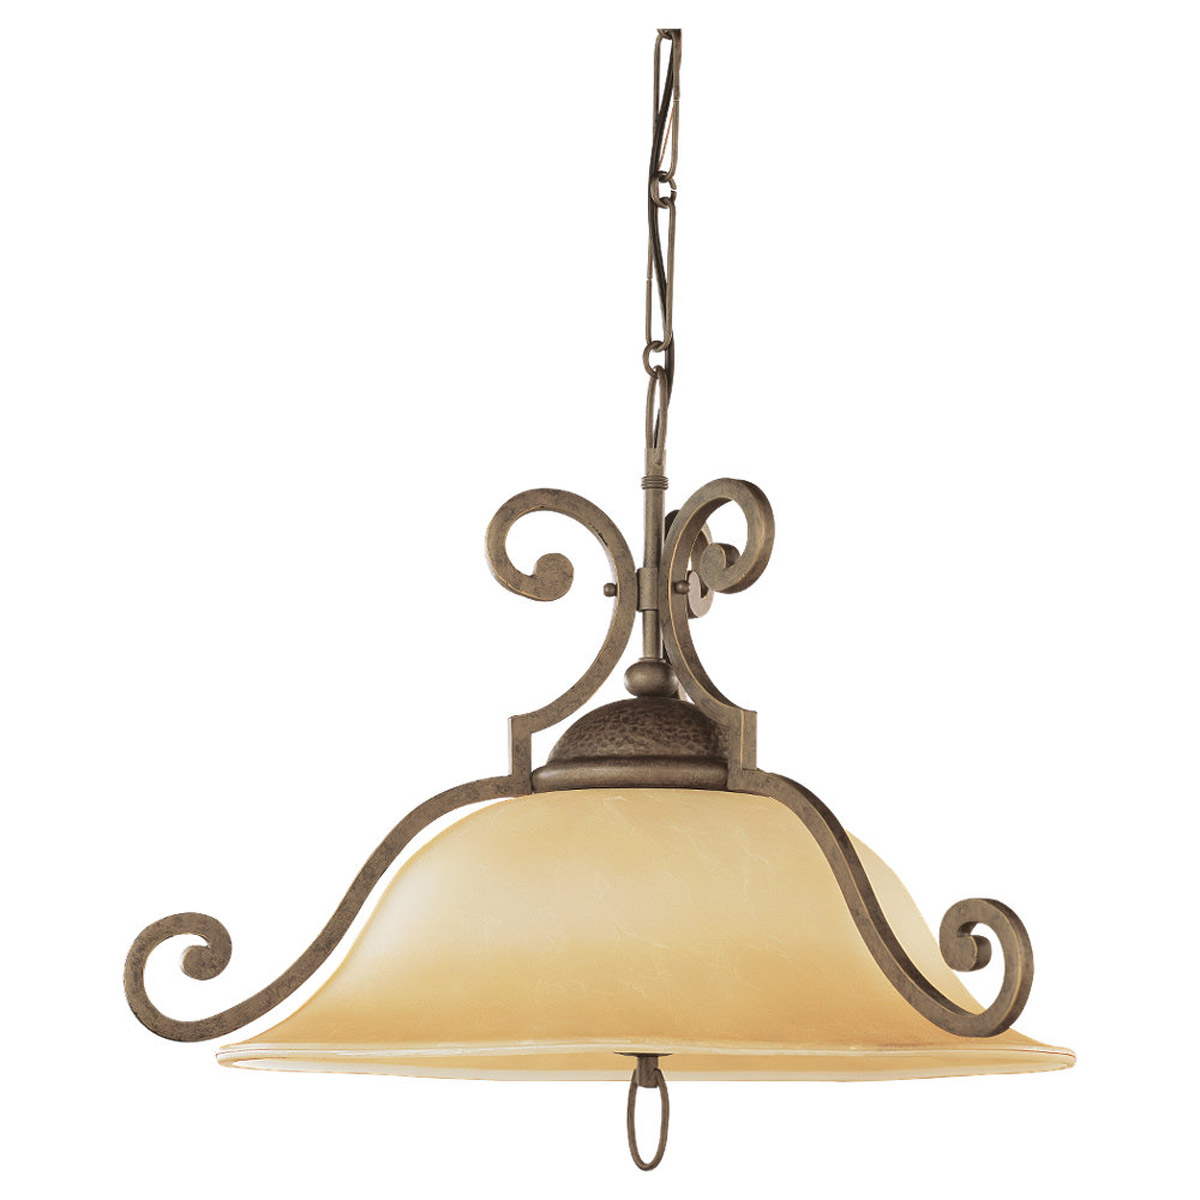 Sea Gull Lighting Brandywine 1 Light Pendant in Antique Bronze 65430-71 photo